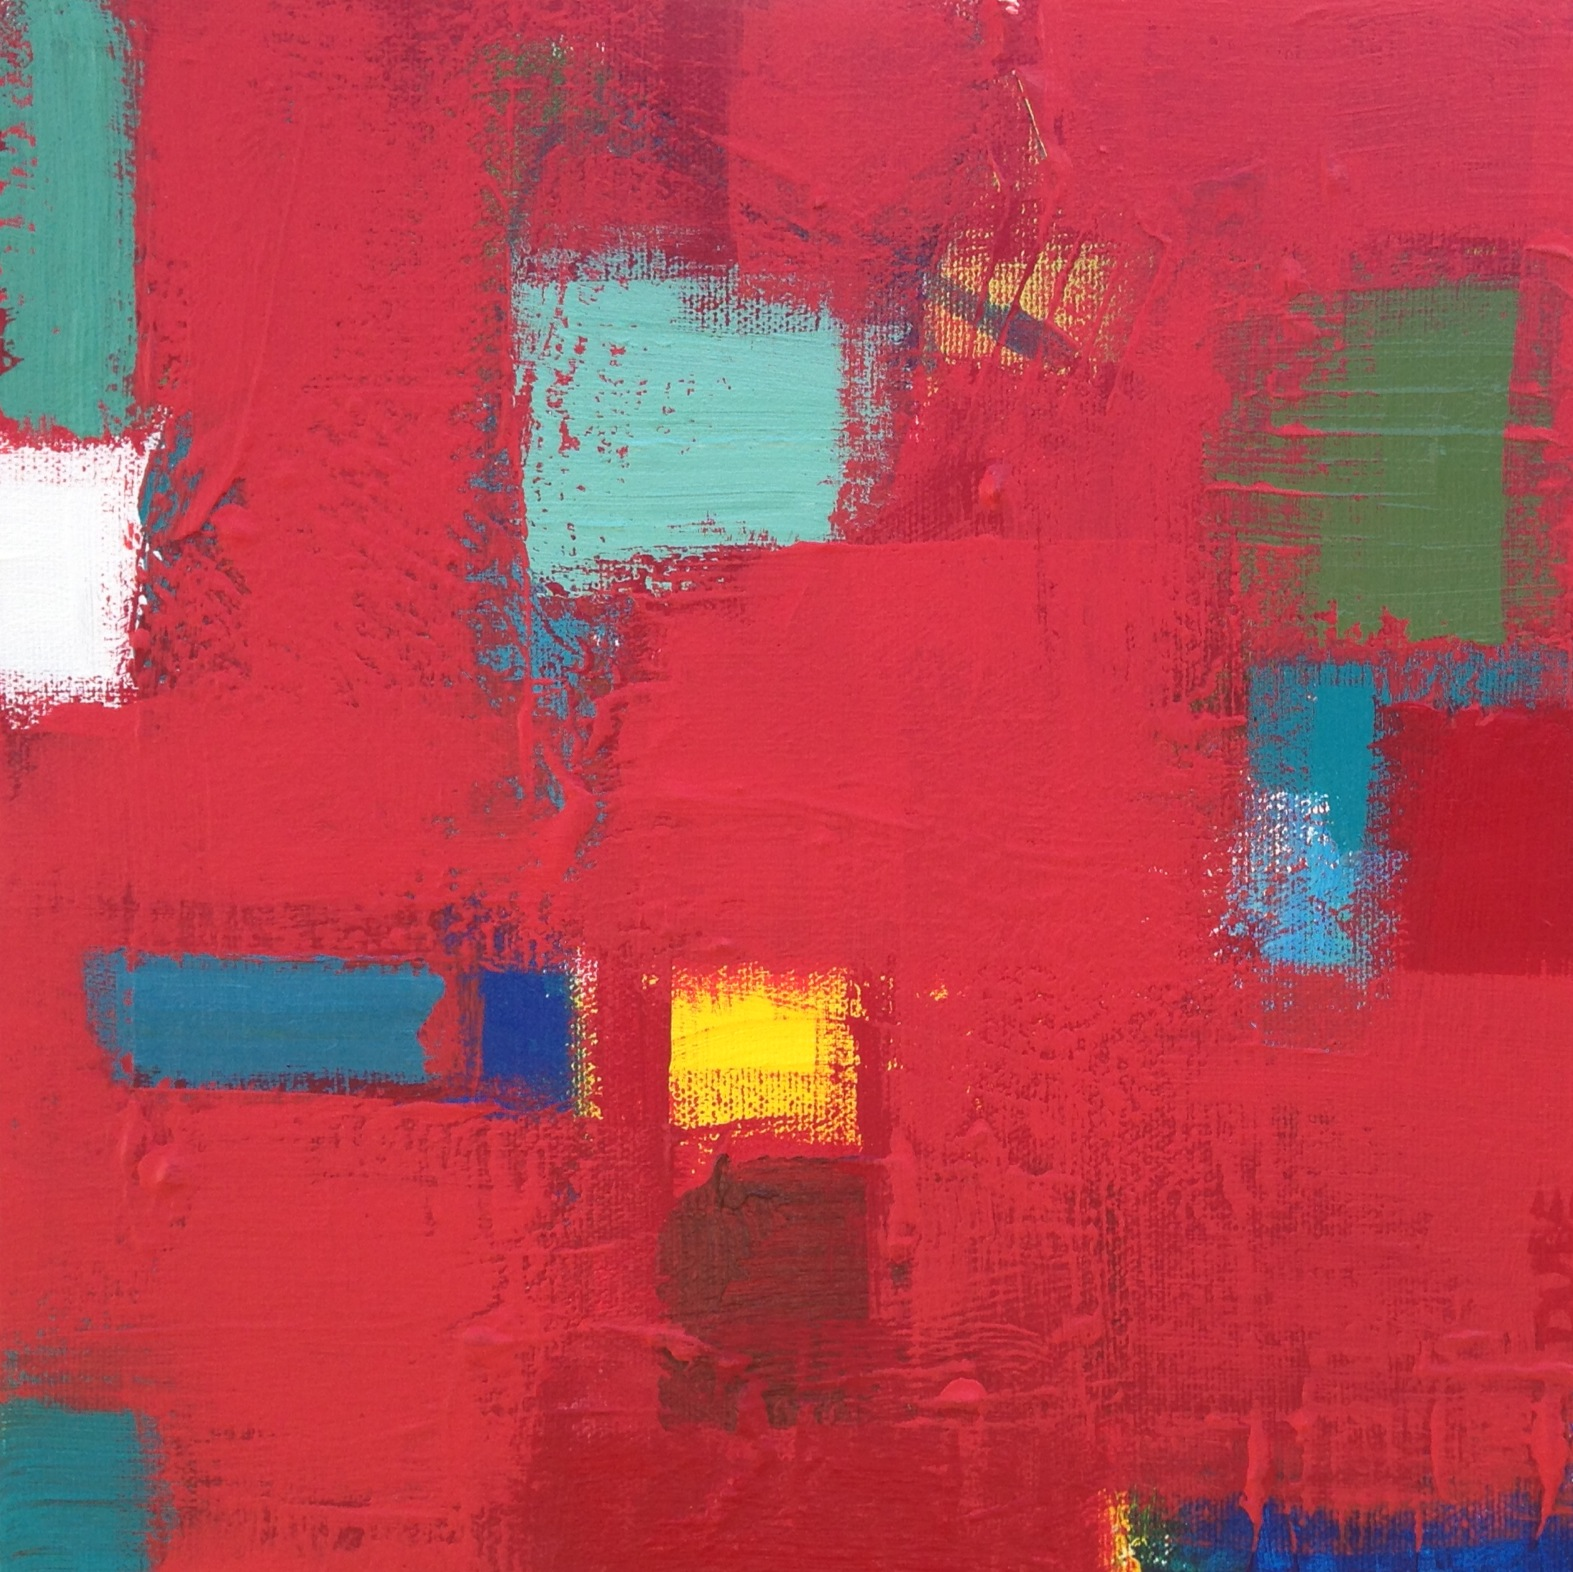 Study in Red II